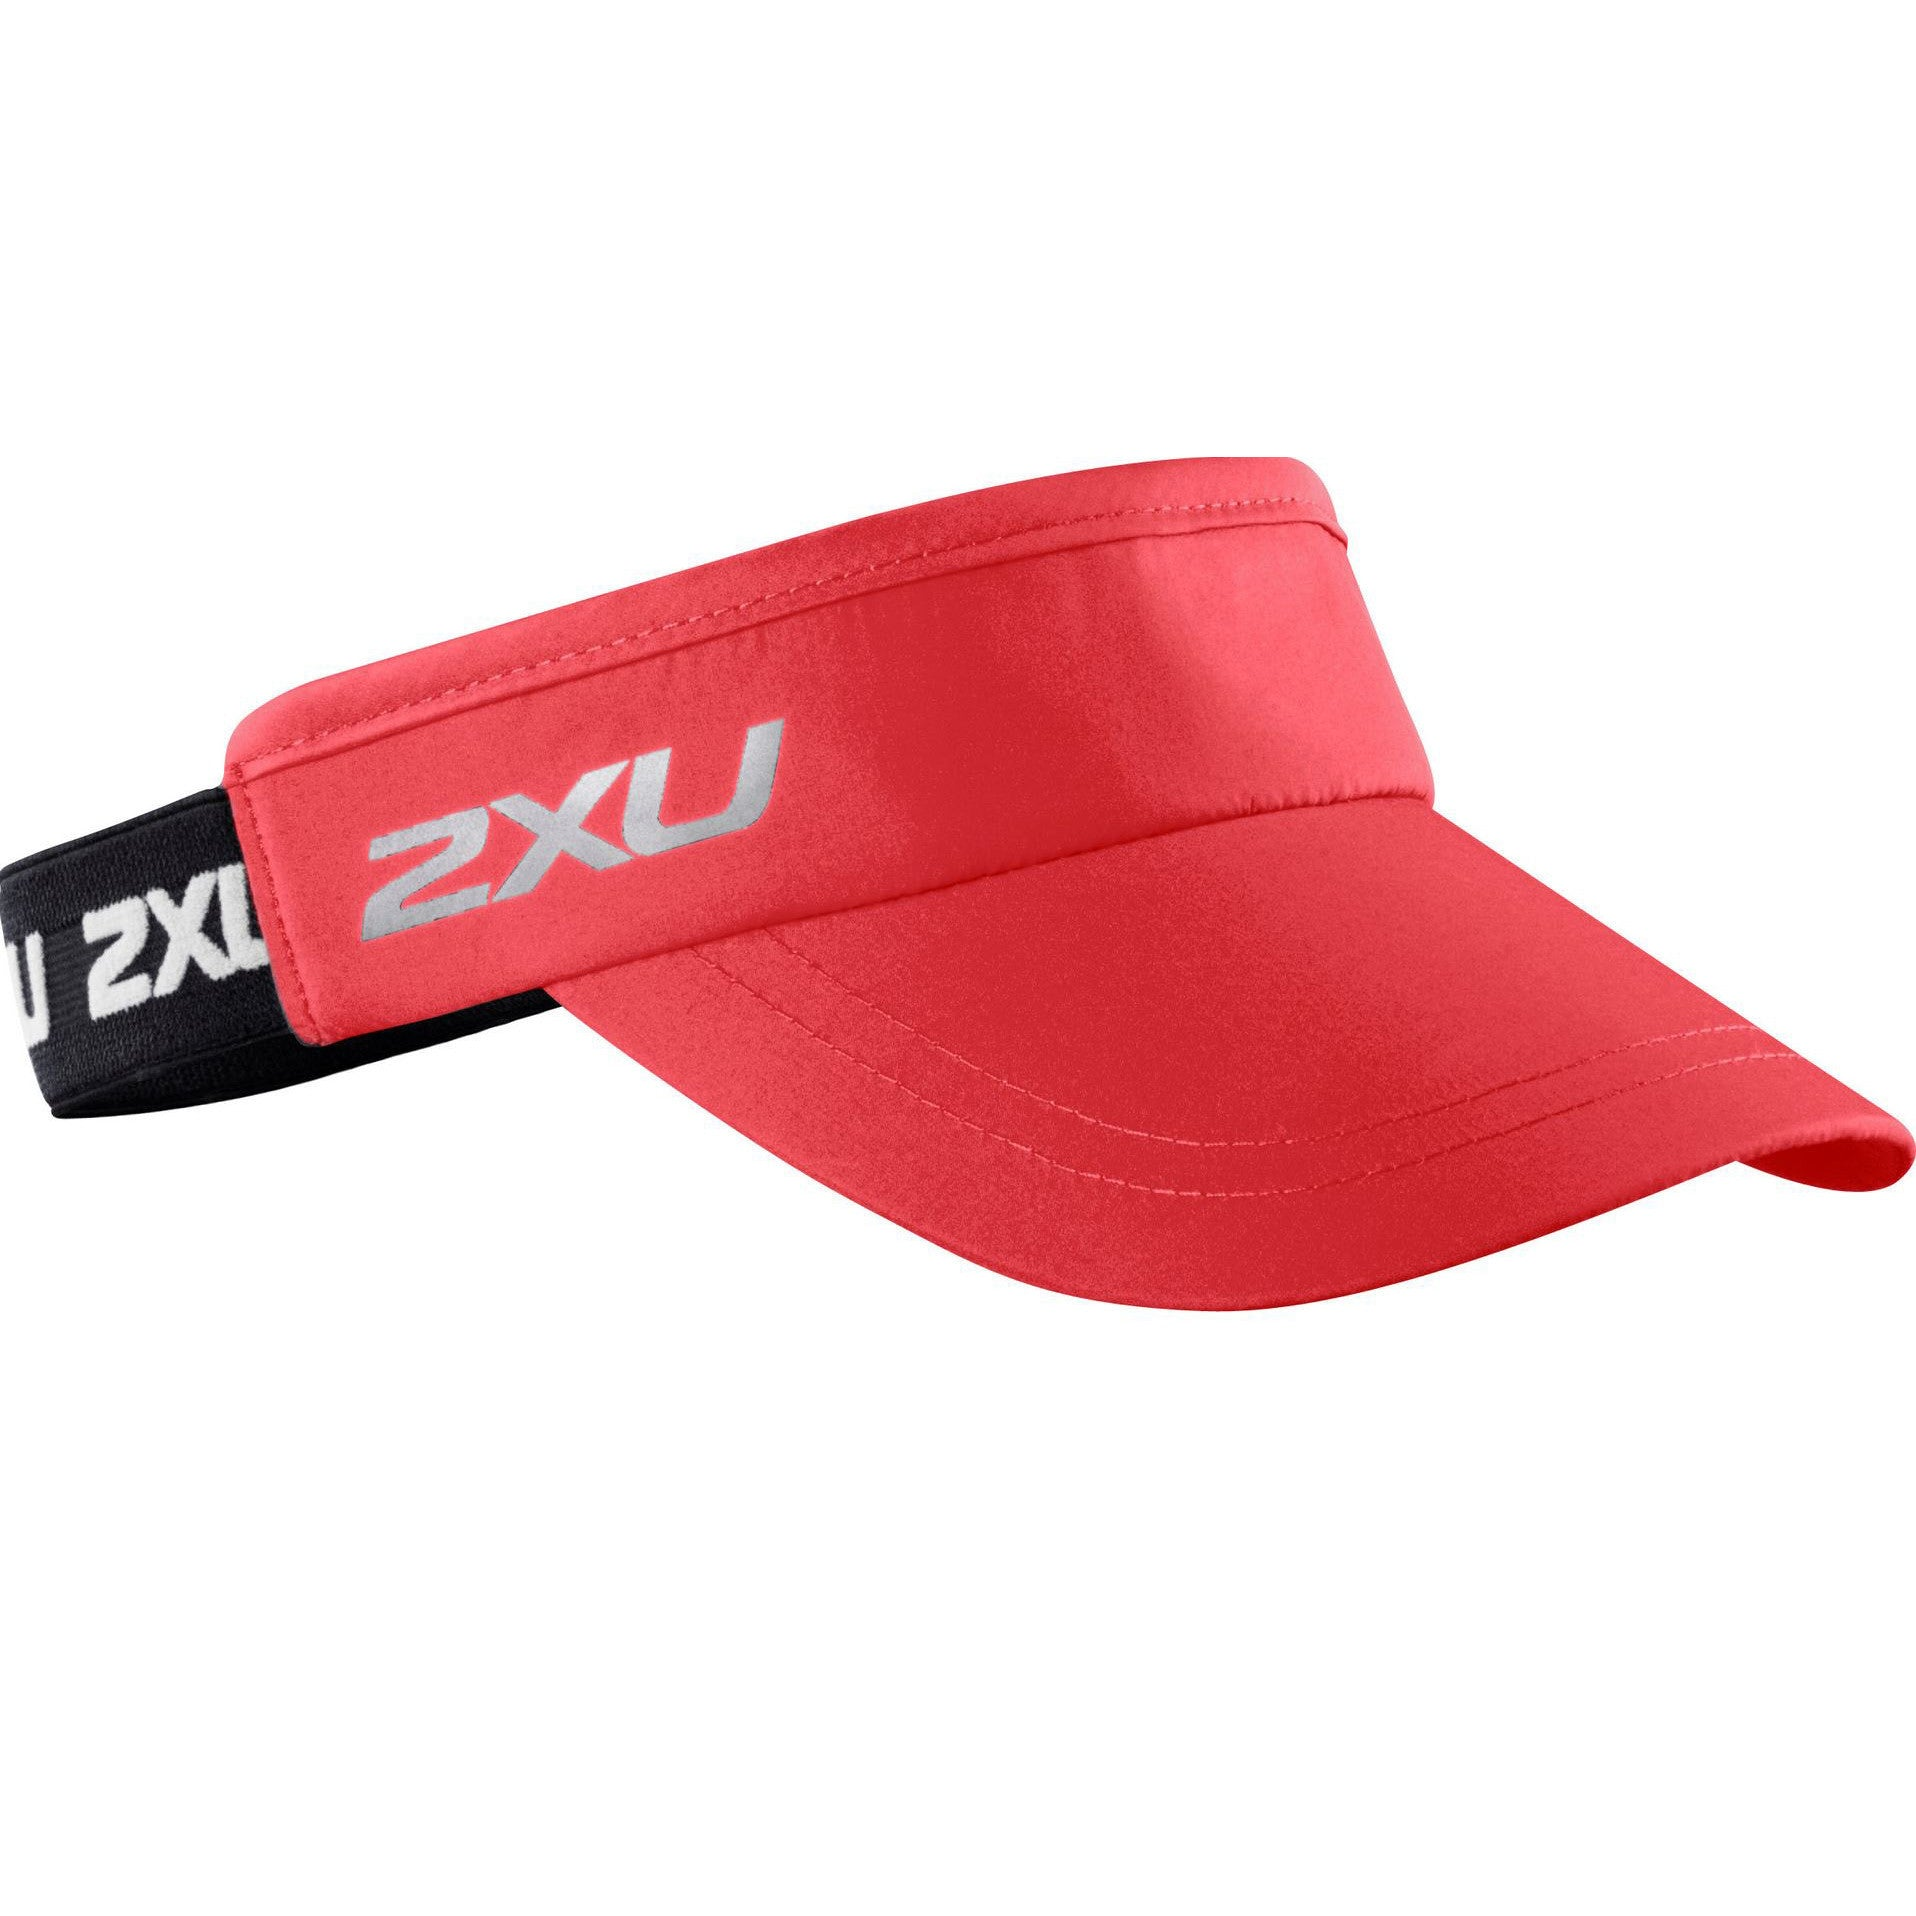 2XU Performance Visor - Triathlon Point